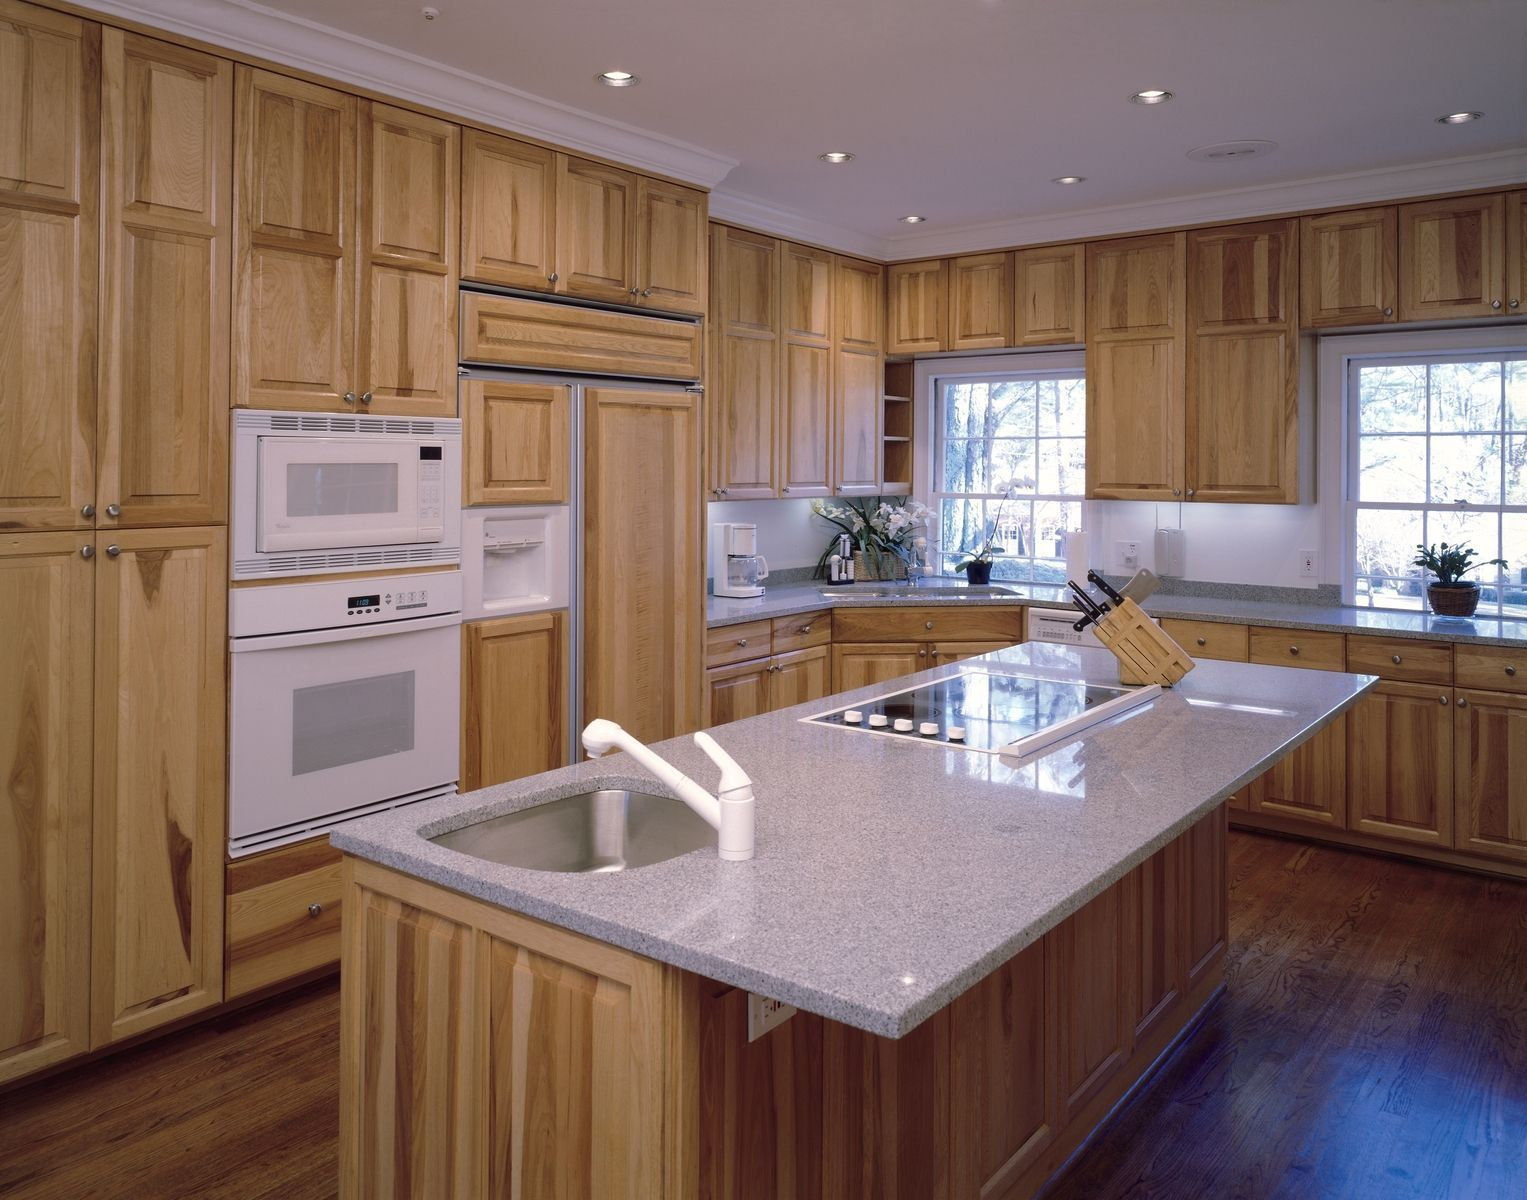 kitchen cabnits hickery in 2020 | Hickory kitchen, Hickory ...